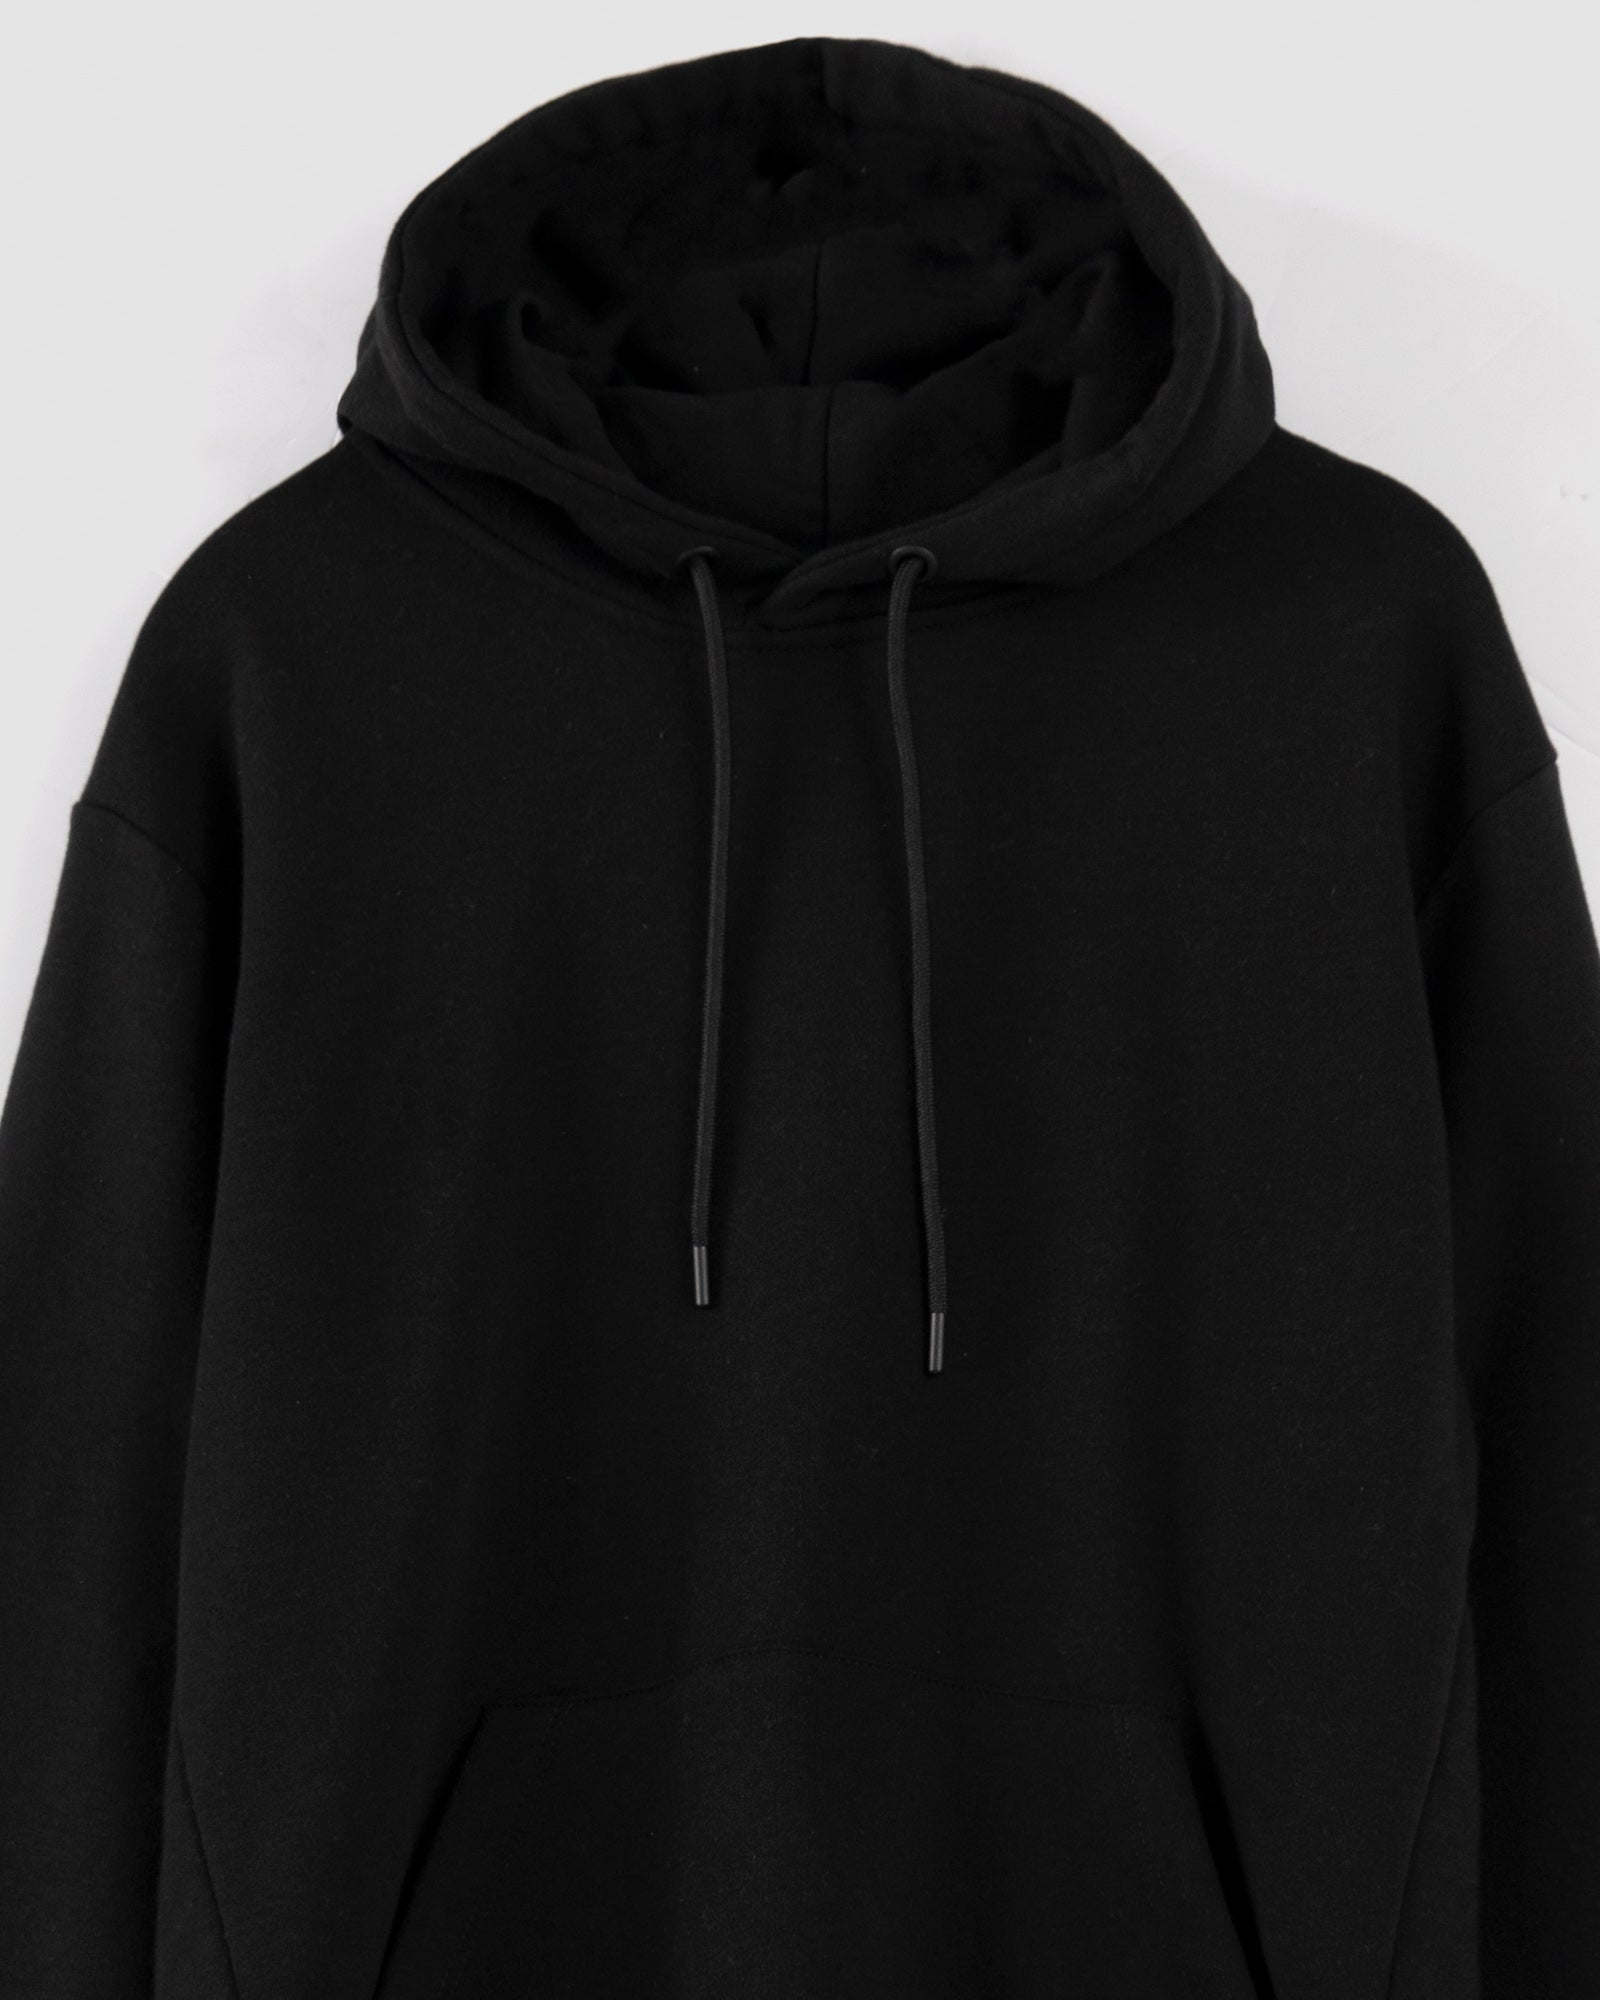 Pullover Hoodie with Kangaroo Pockets